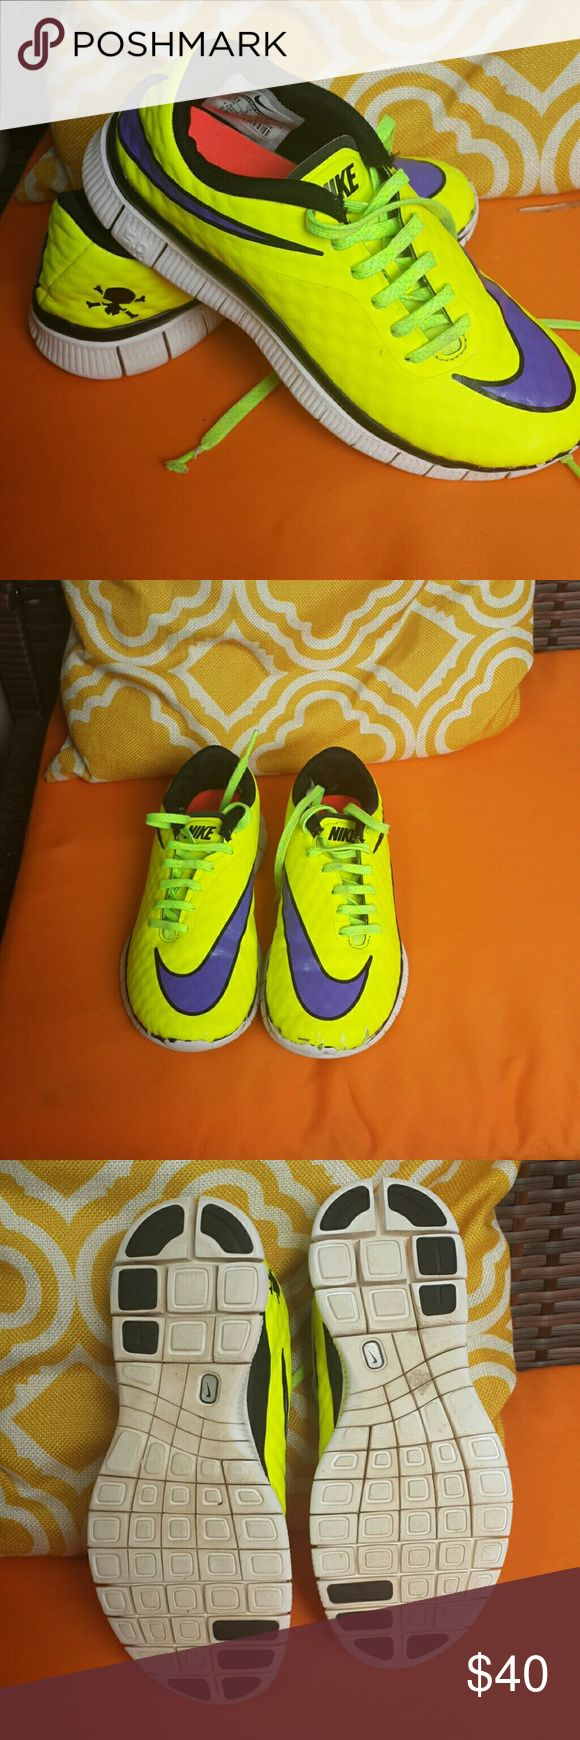 Nike free 5.0   US 3.5Y Nike free 5.0 neon shoes for boys . Good condition. Price is negotiable. Nike Shoes Sneakers